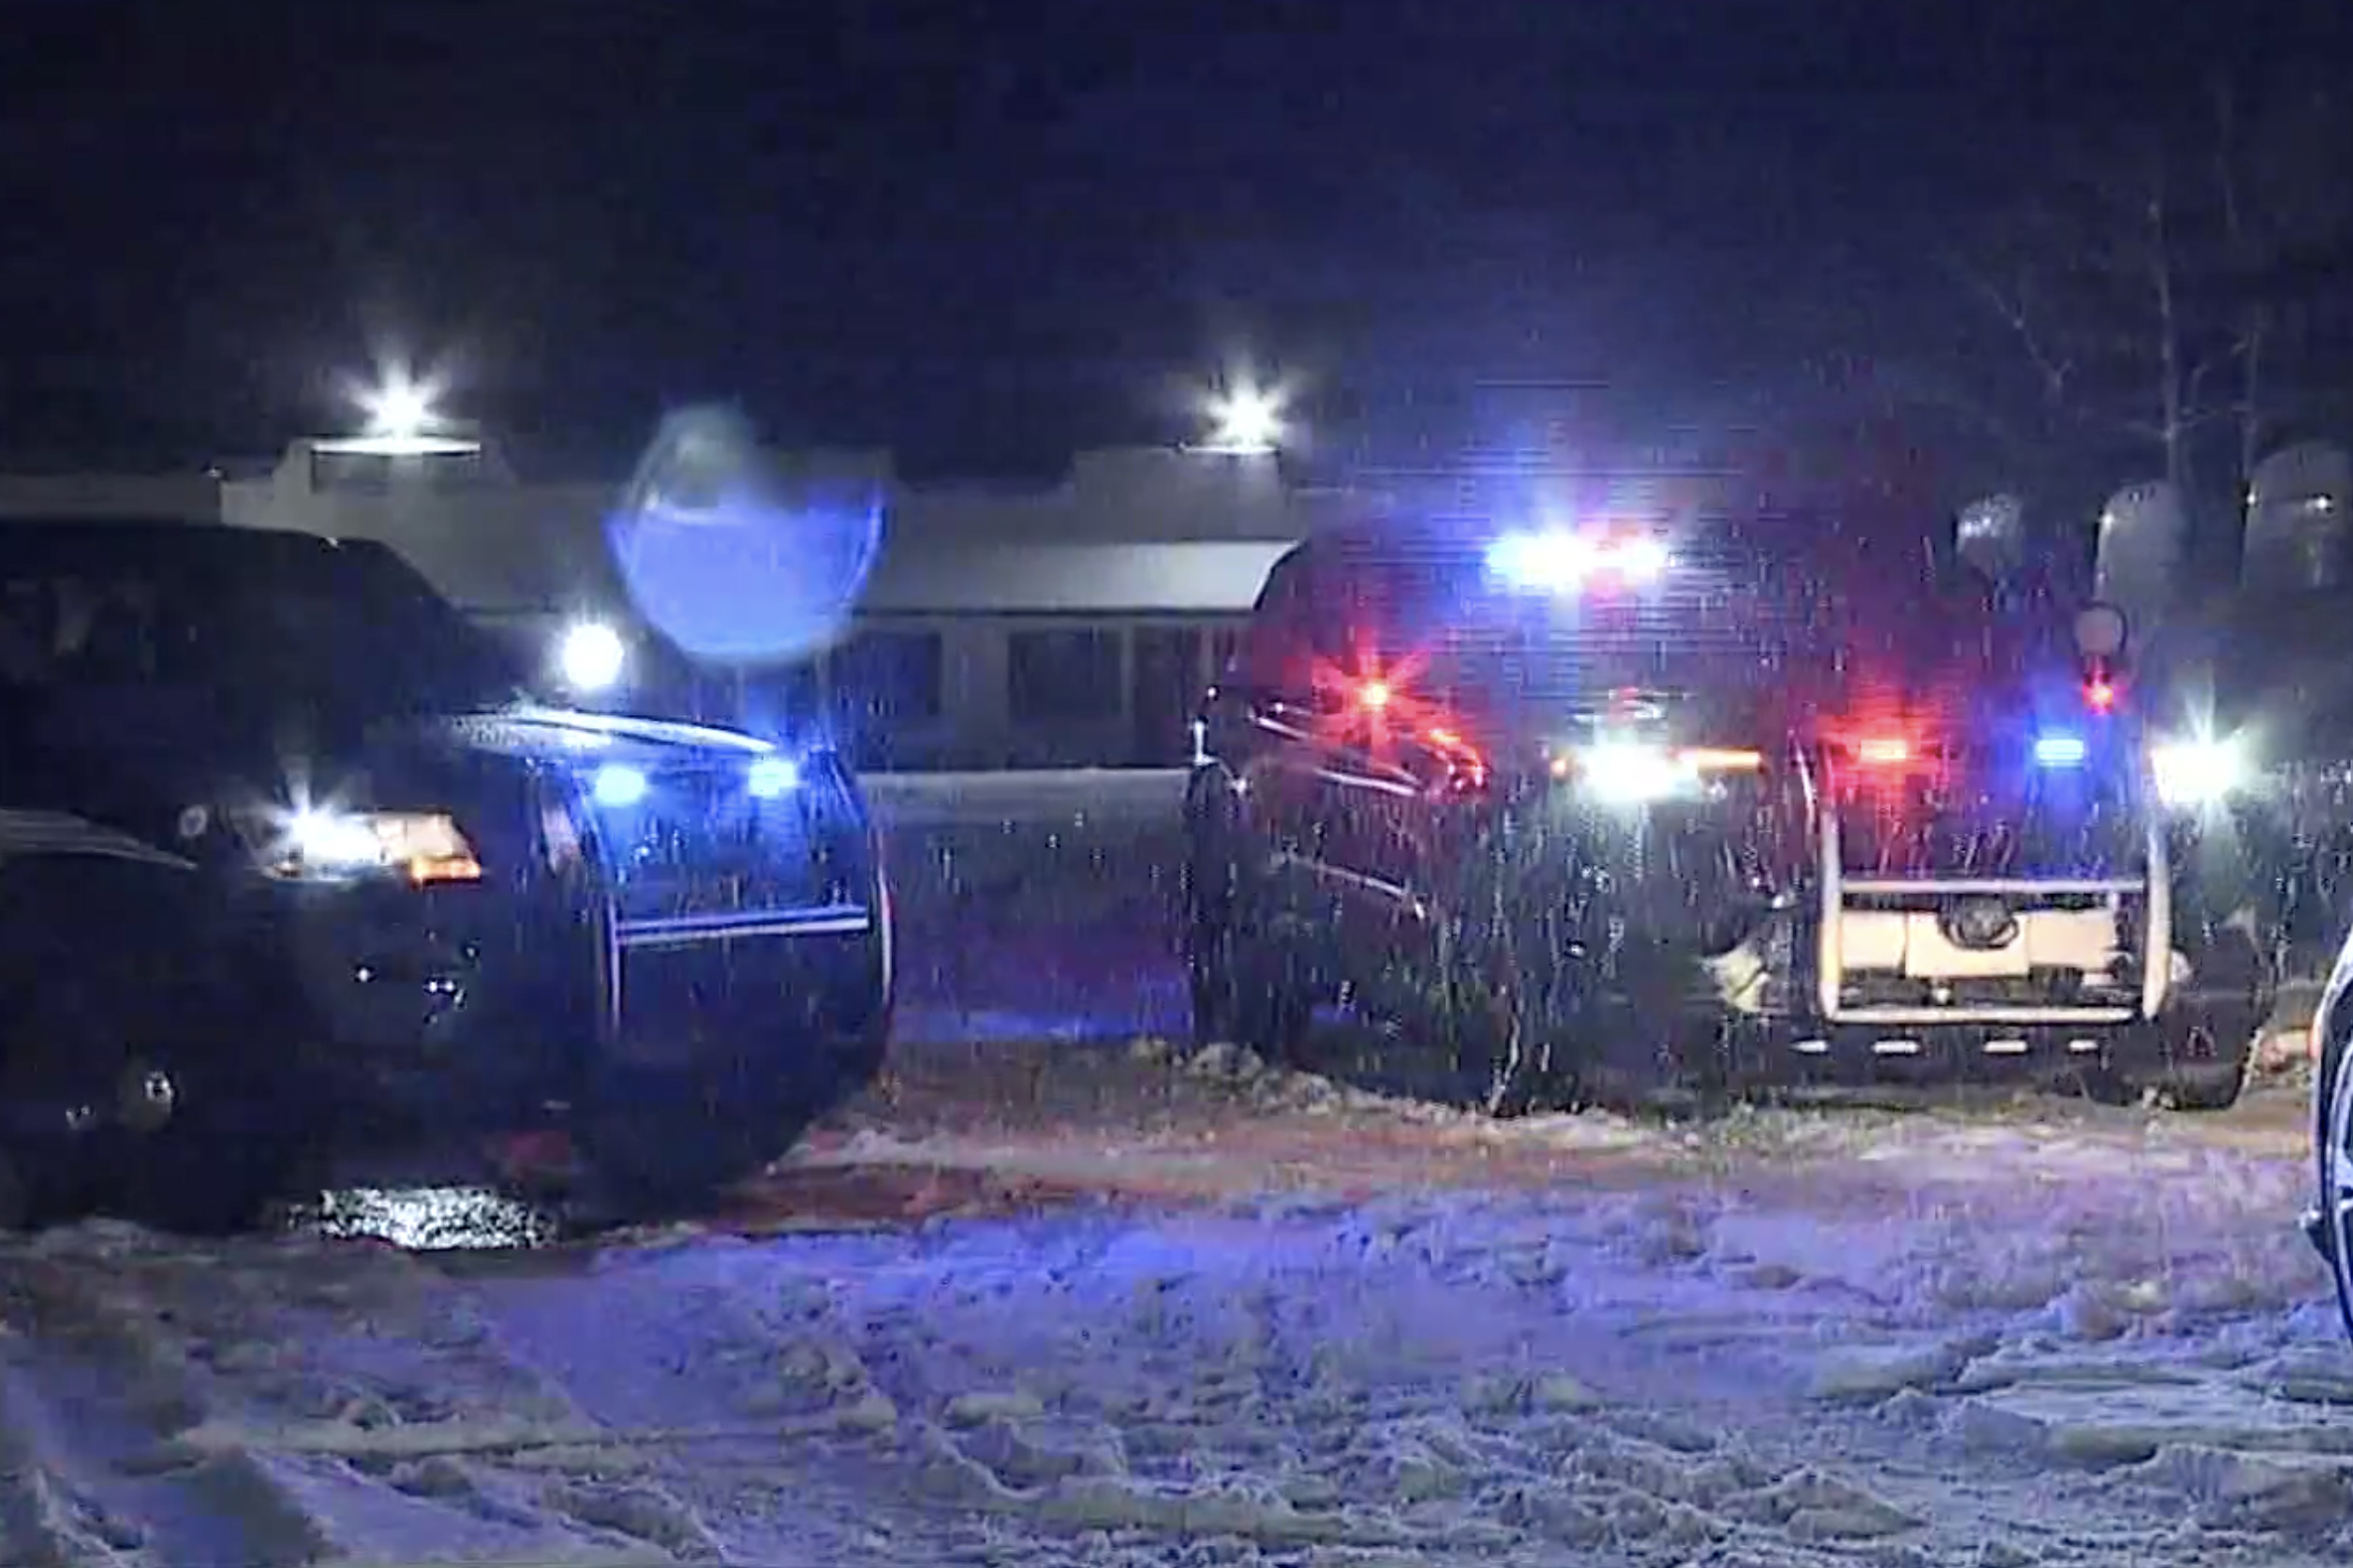 At least 4 wounded in string of 'connected' shootings in the Poconos